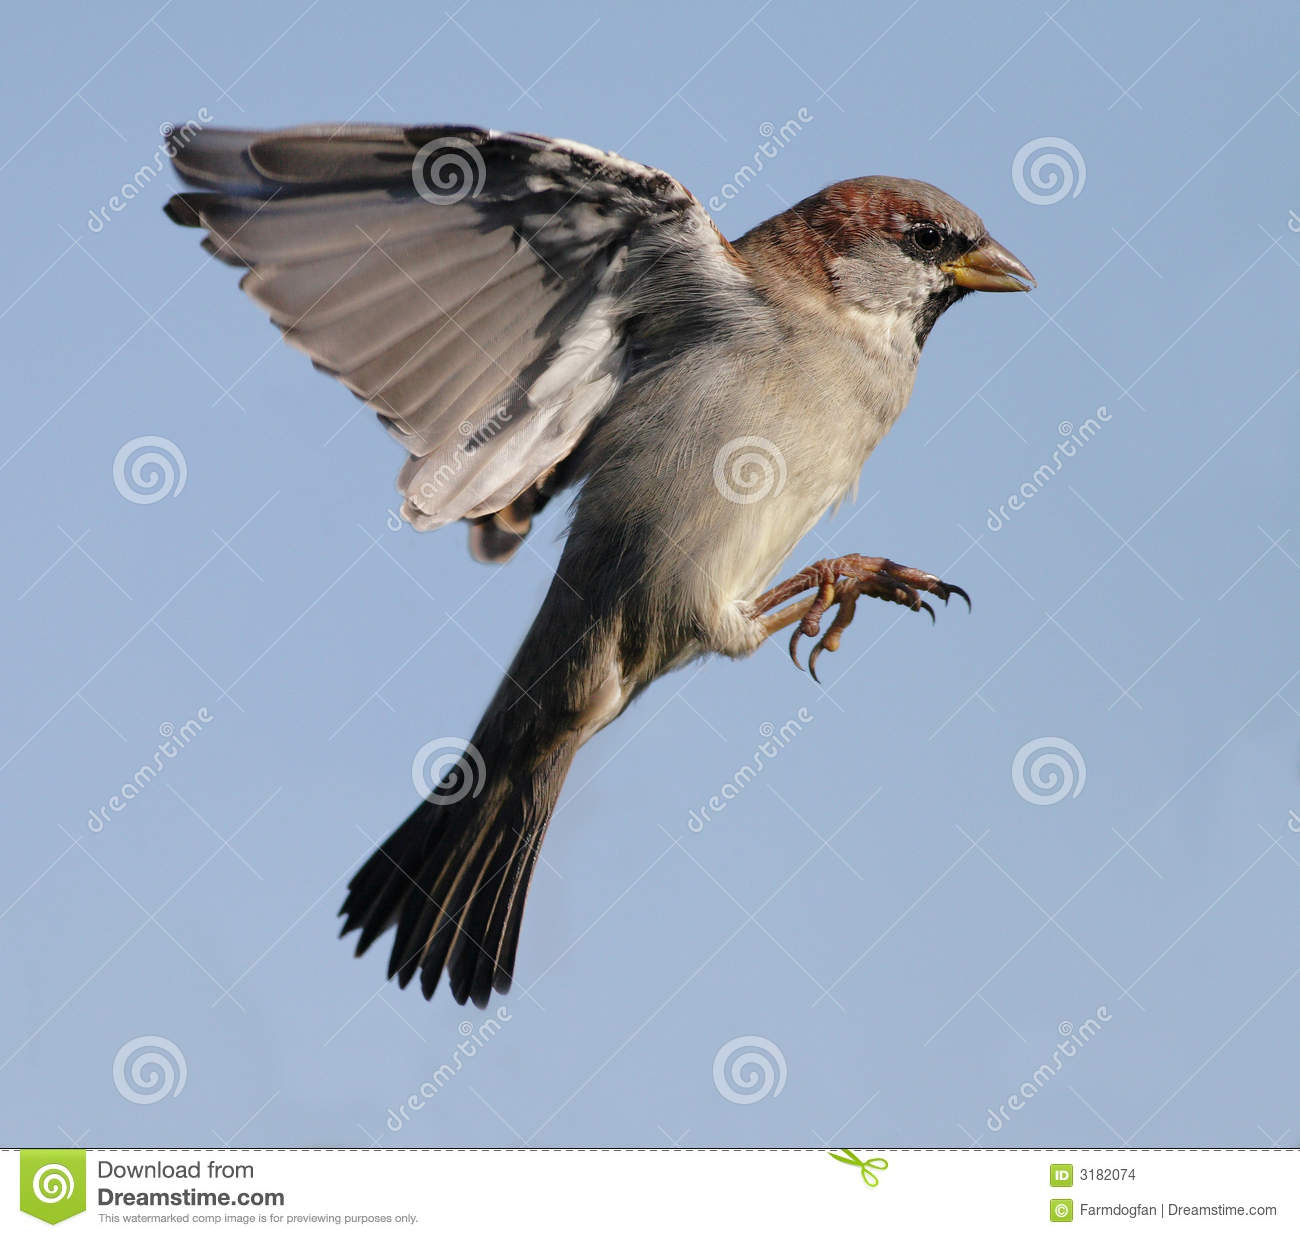 Sparrow Stock Images - Image: 3182074